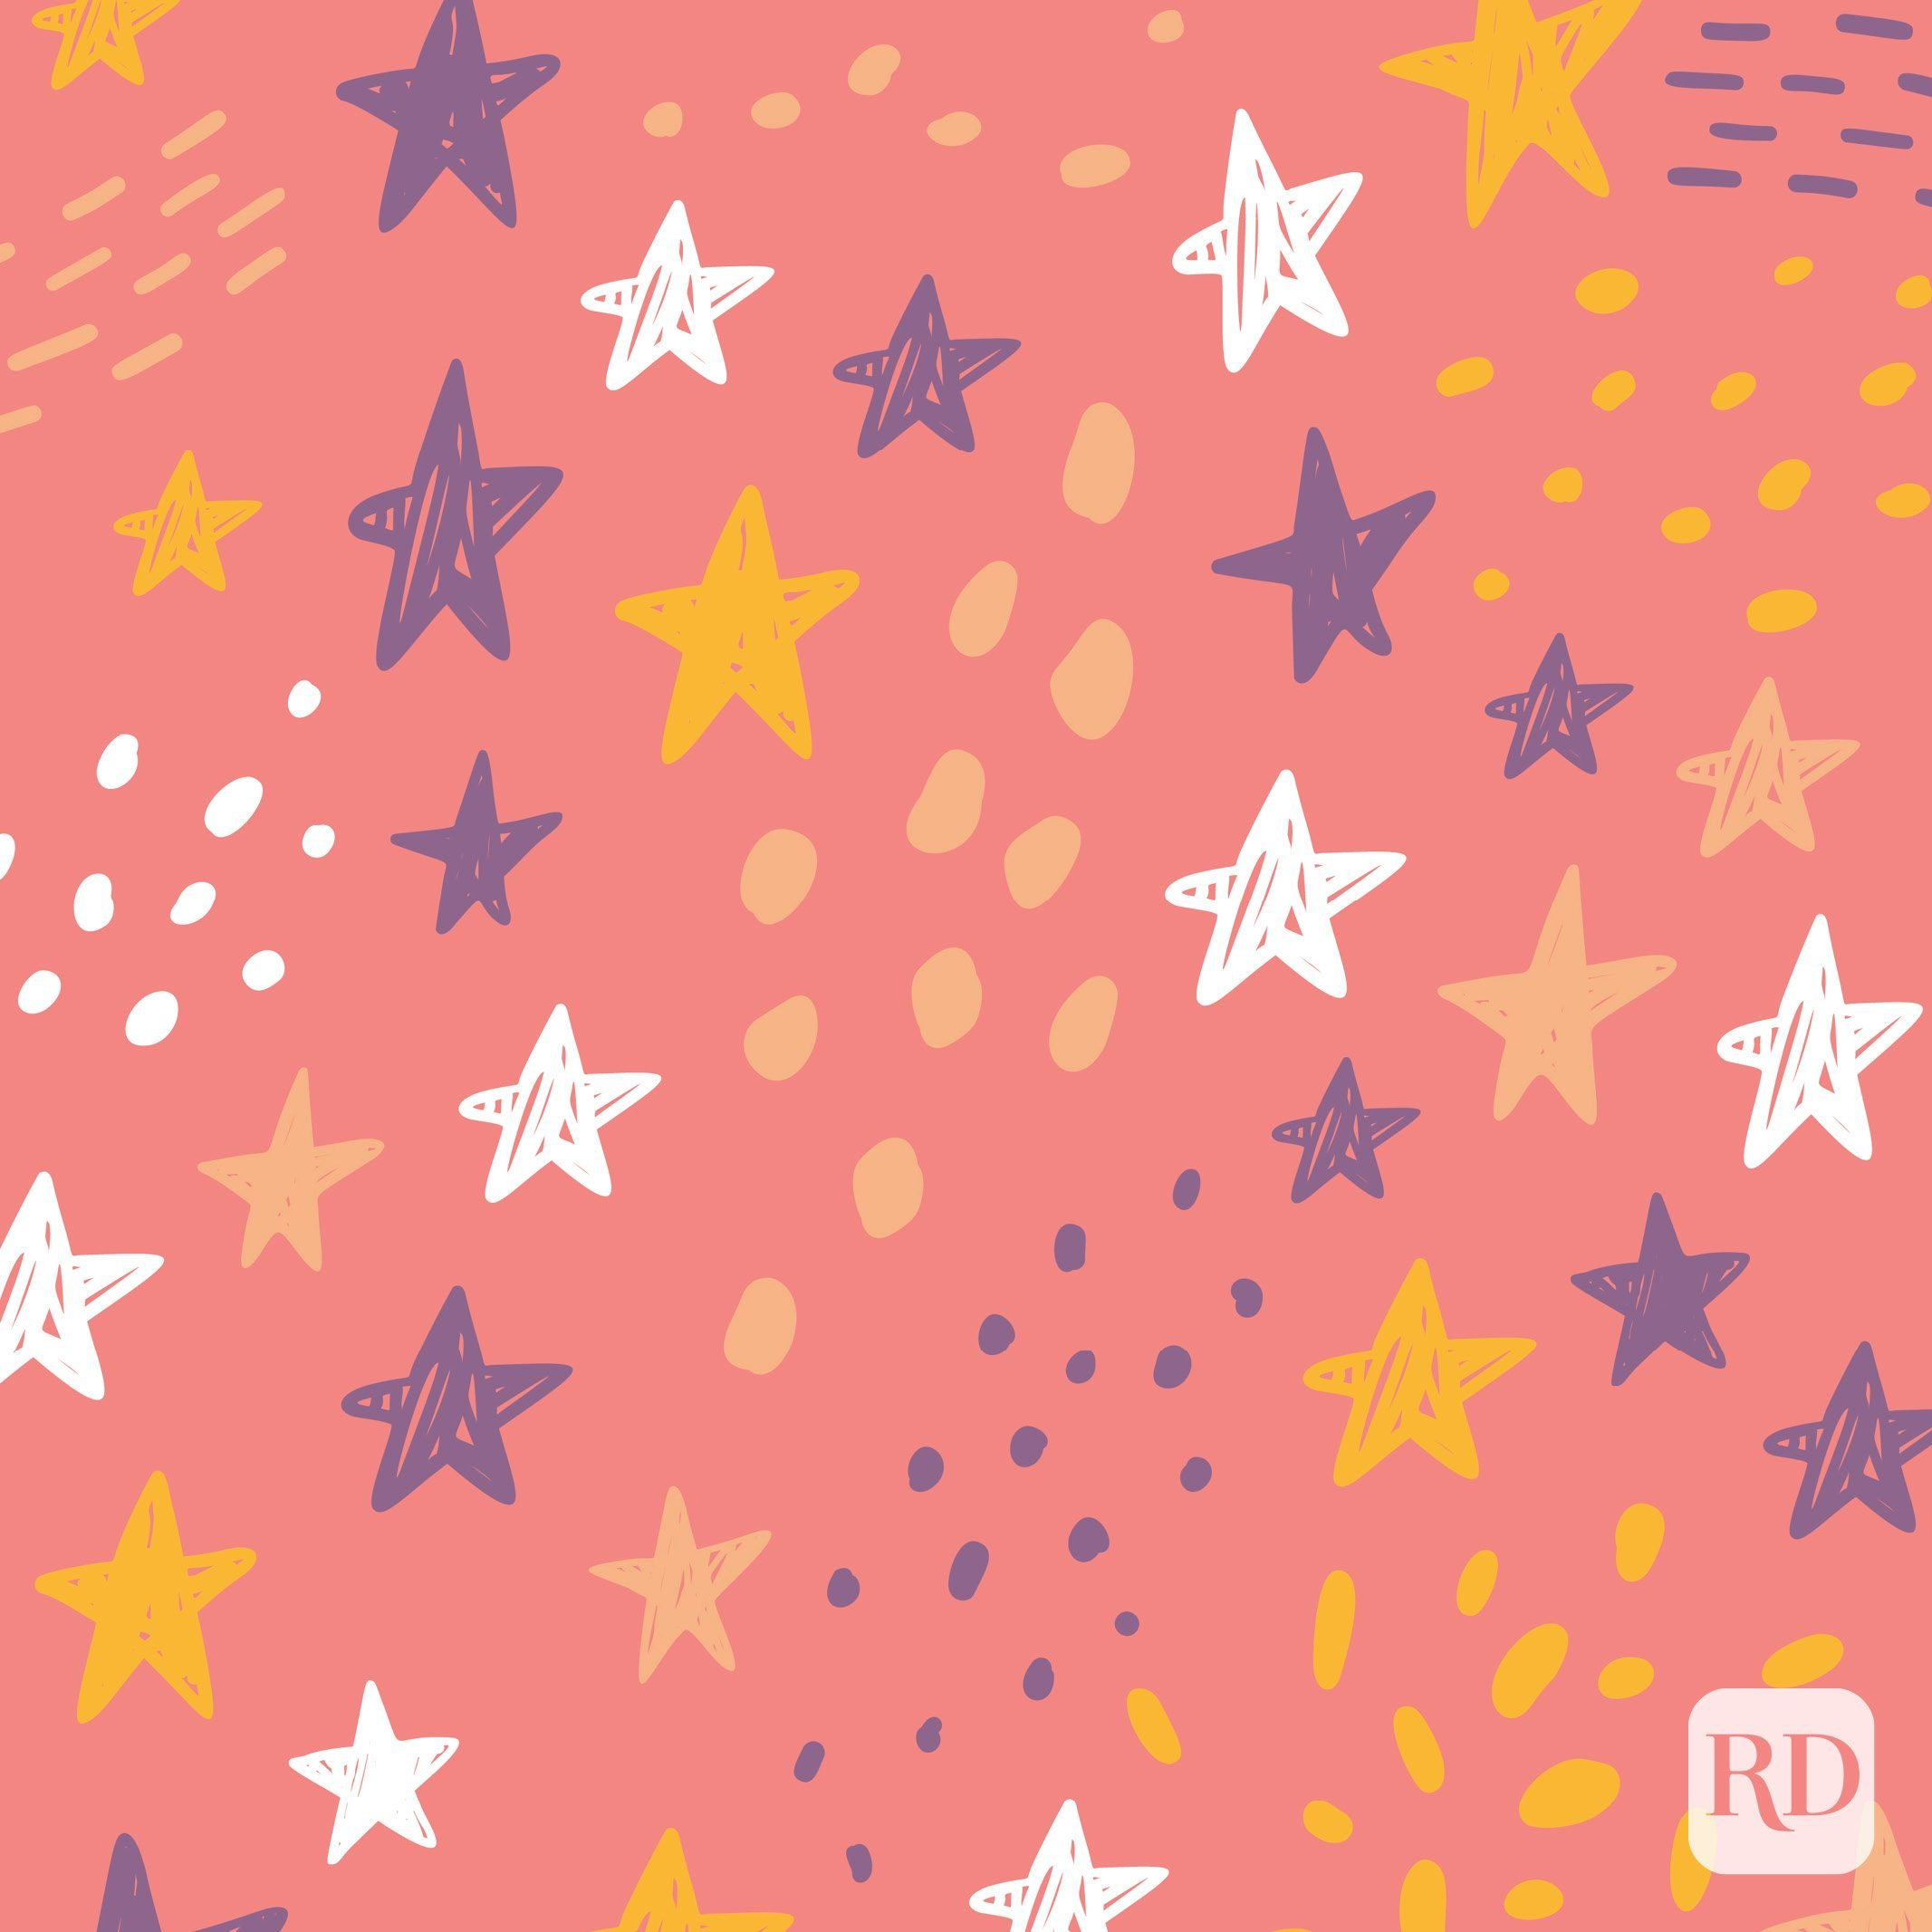 Illustration of stars and dots